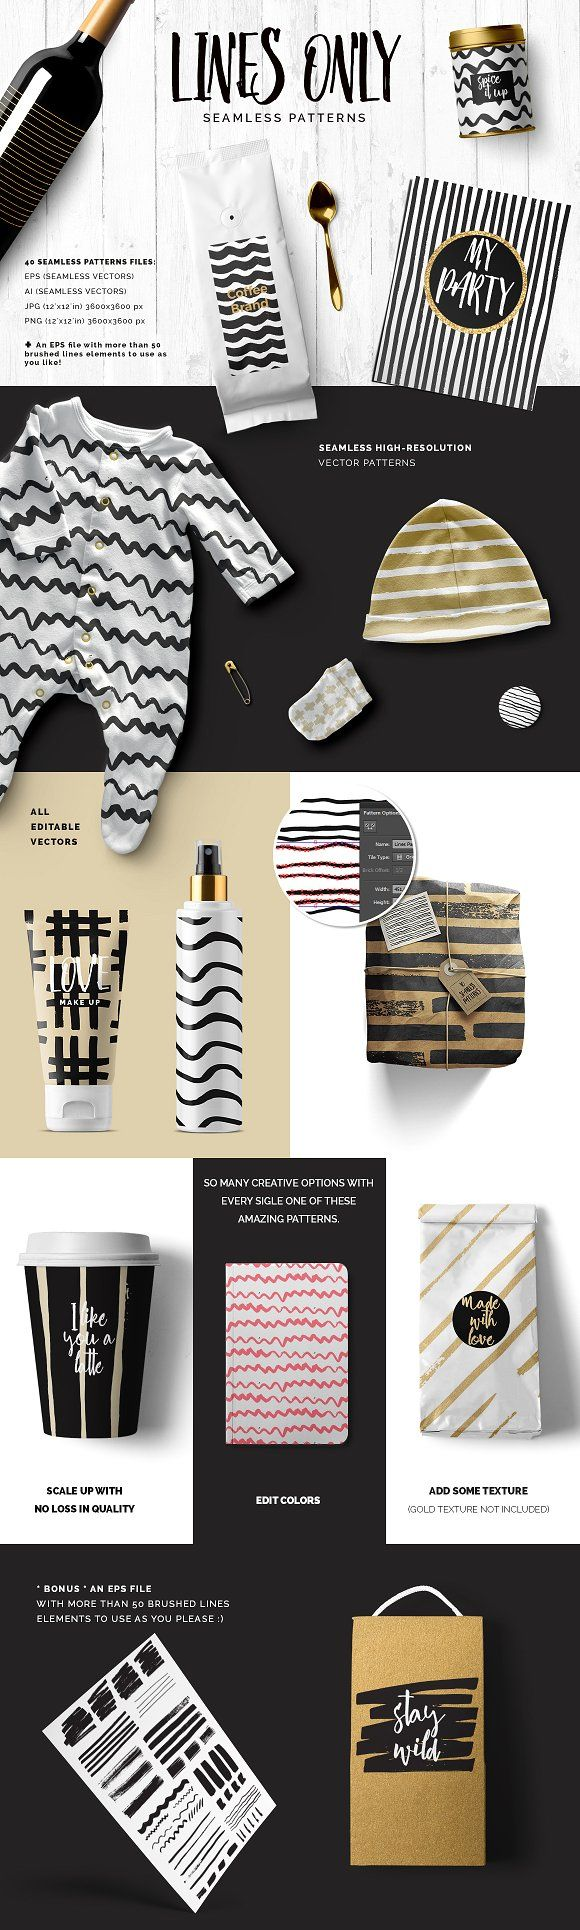 Handdrawn Lines Patterns by Youandigraphics on @creativemarket